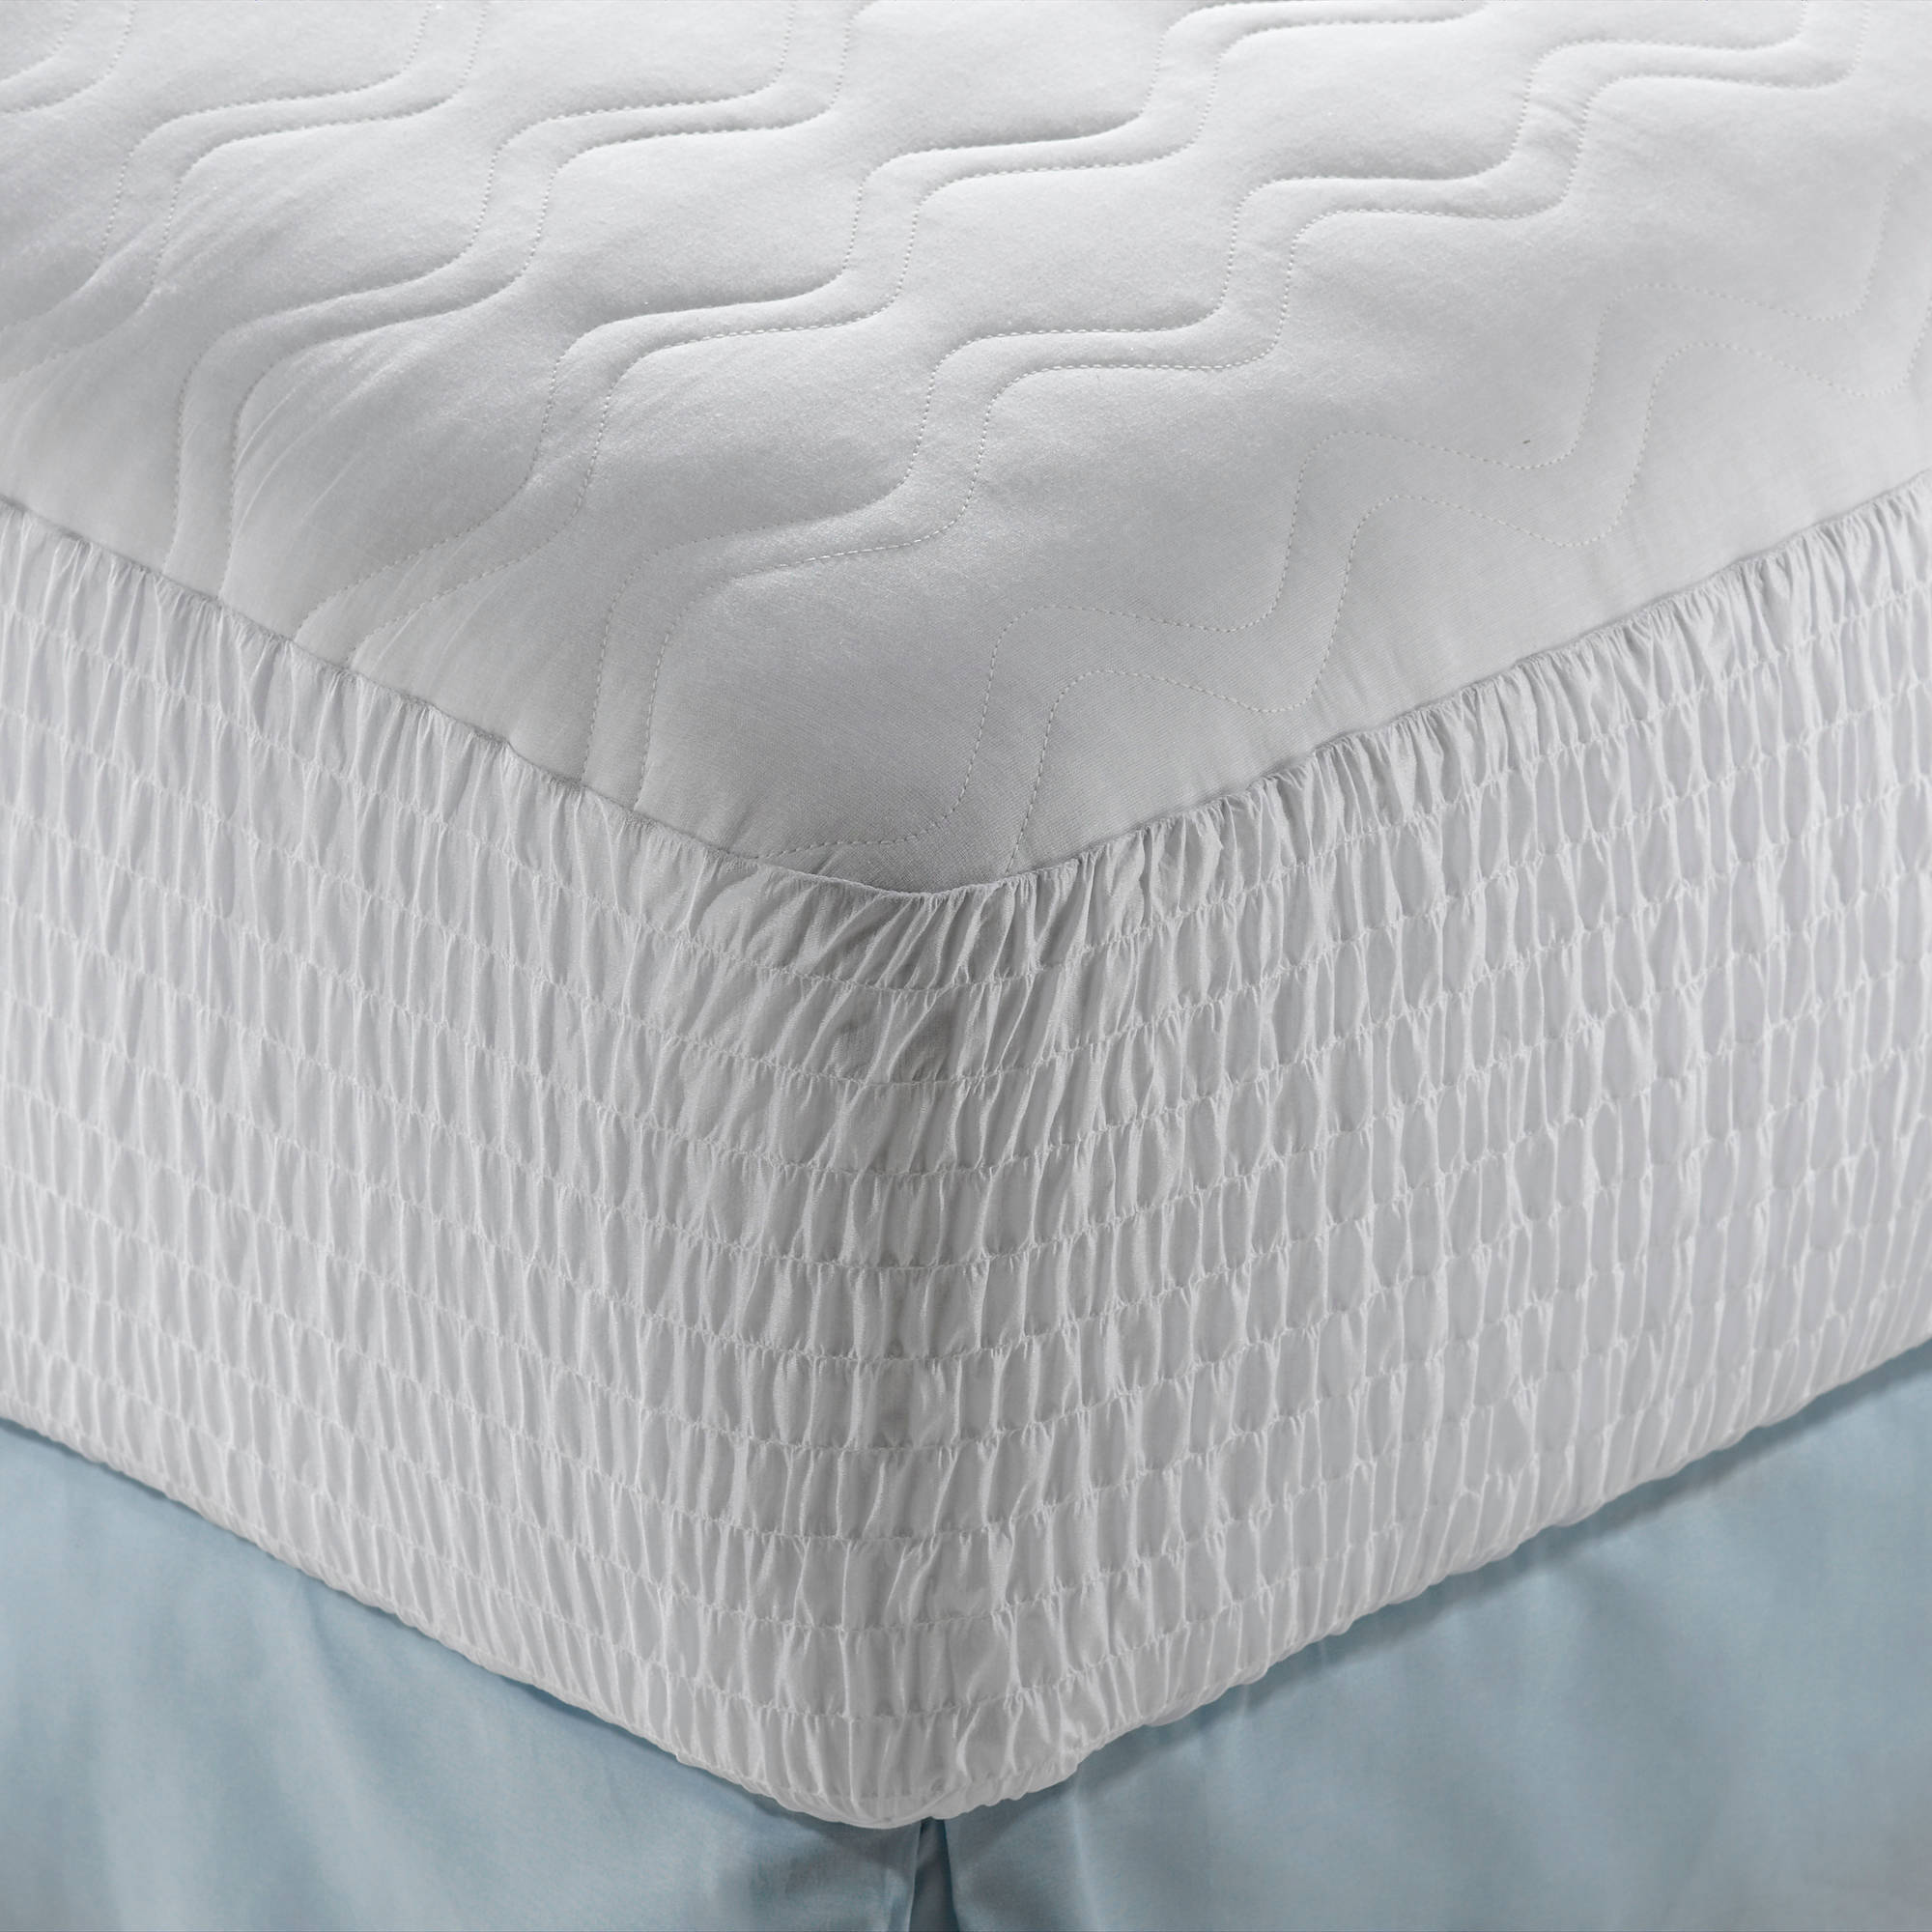 simmons products androslfptlorescutaway tx topper luxury mattress depot pillow firm andros beautysleep top